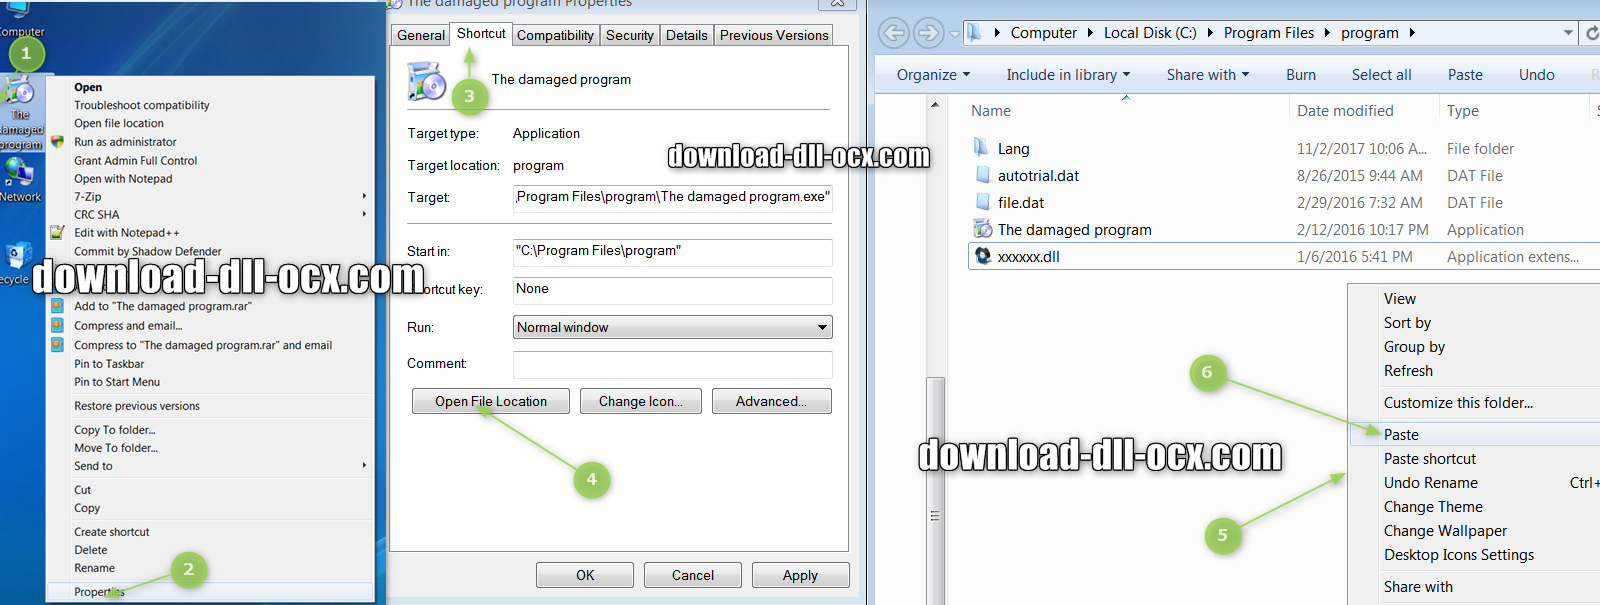 how to install comcat.dll file? for fix missing